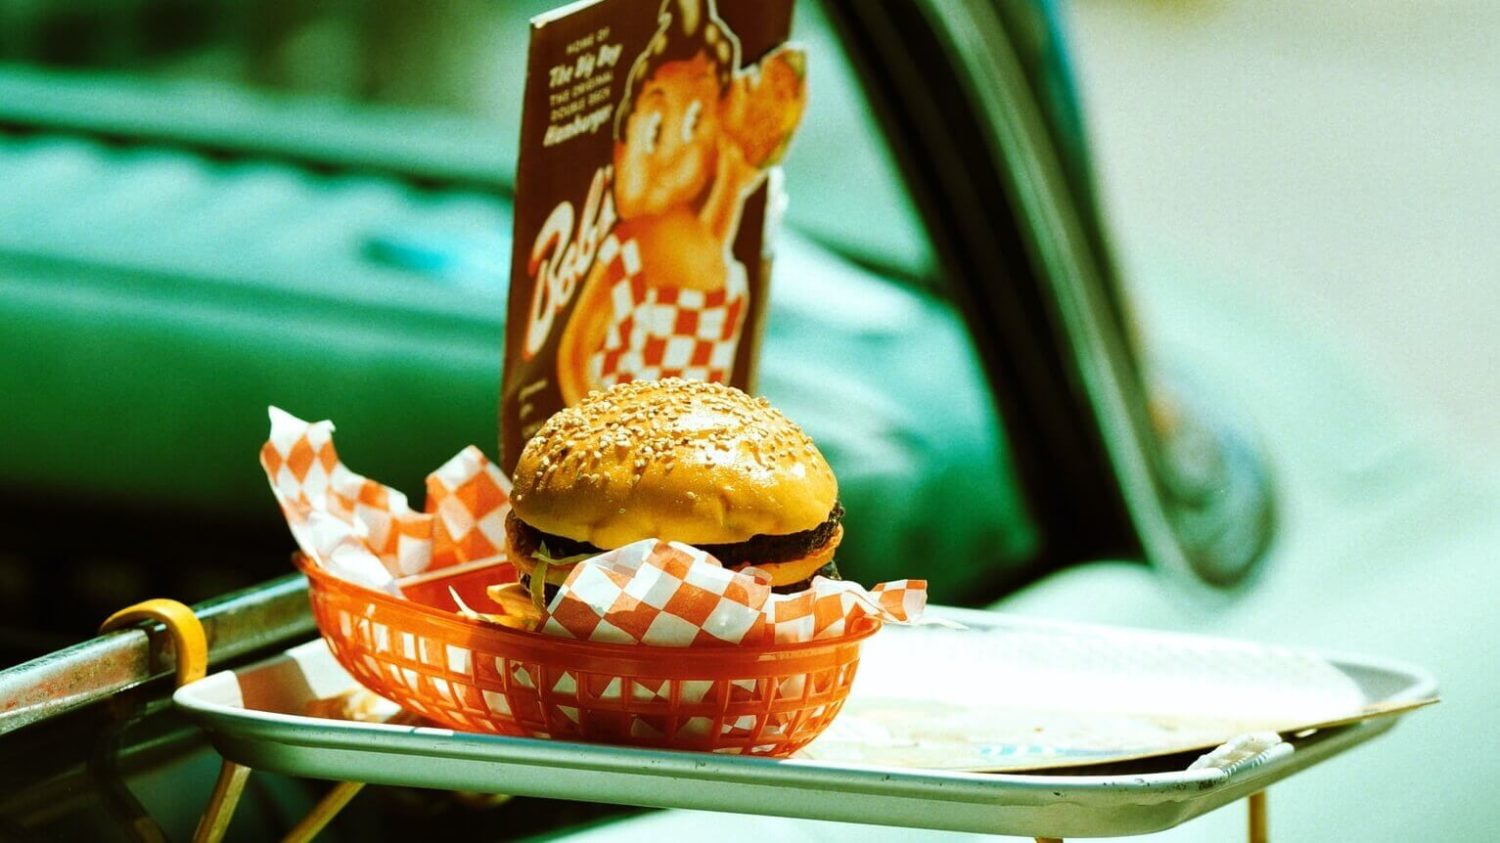 19 Vegan Drive Thru Meals And Restaurants For Your Fast Food Fix Livekindly